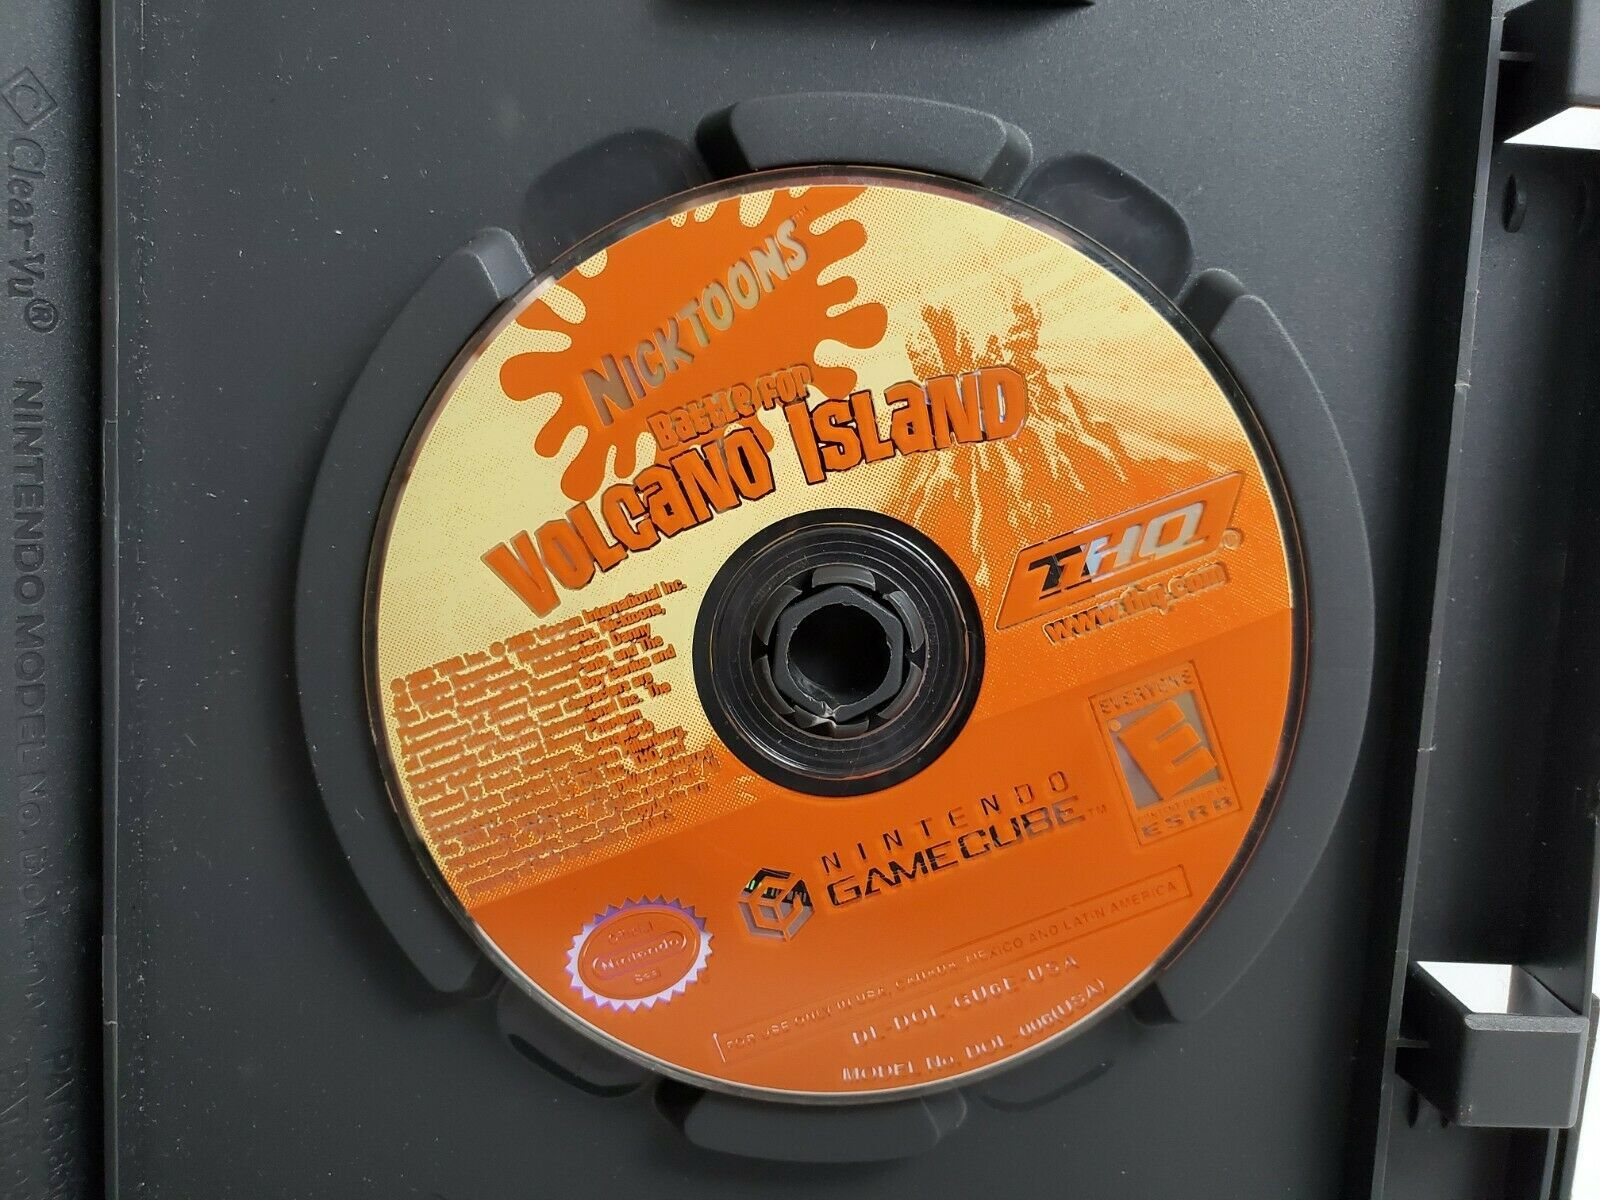 Primary image for Nicktoons Battle for Volcano Island Nintendo GameCube 2006 Disc Only Tested